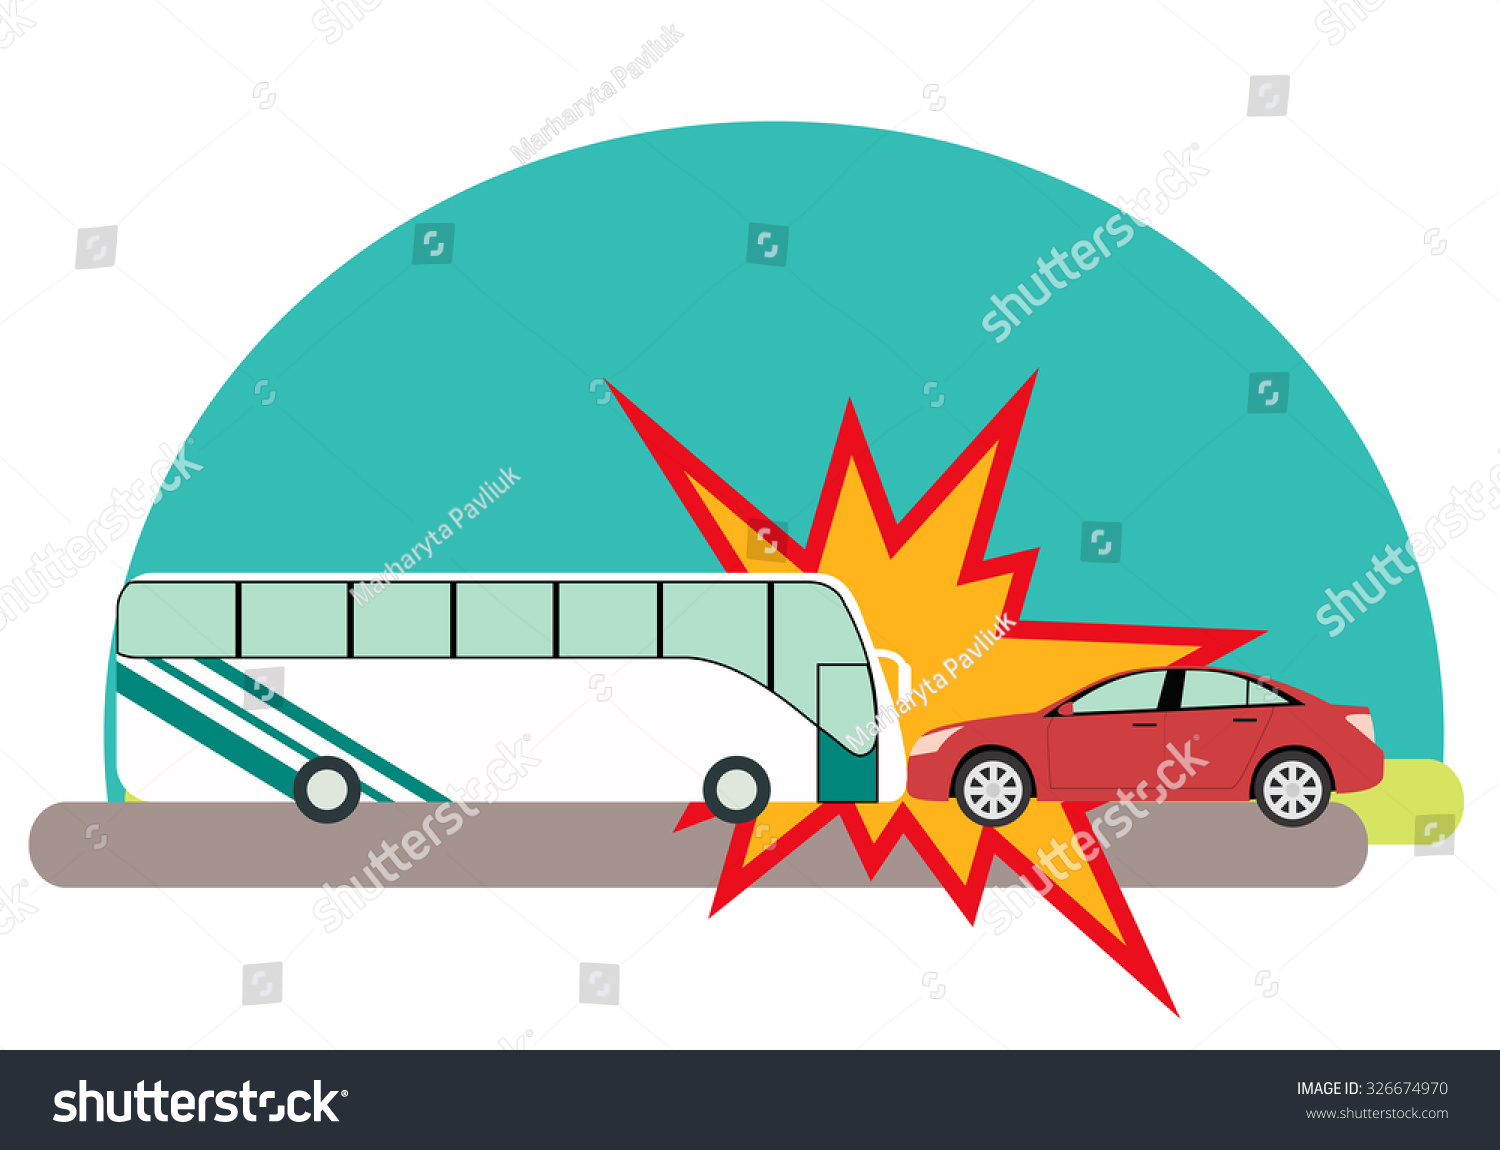 Road Accident Bus Passengers Crashed Into Stock Vector (Royalty Free ...